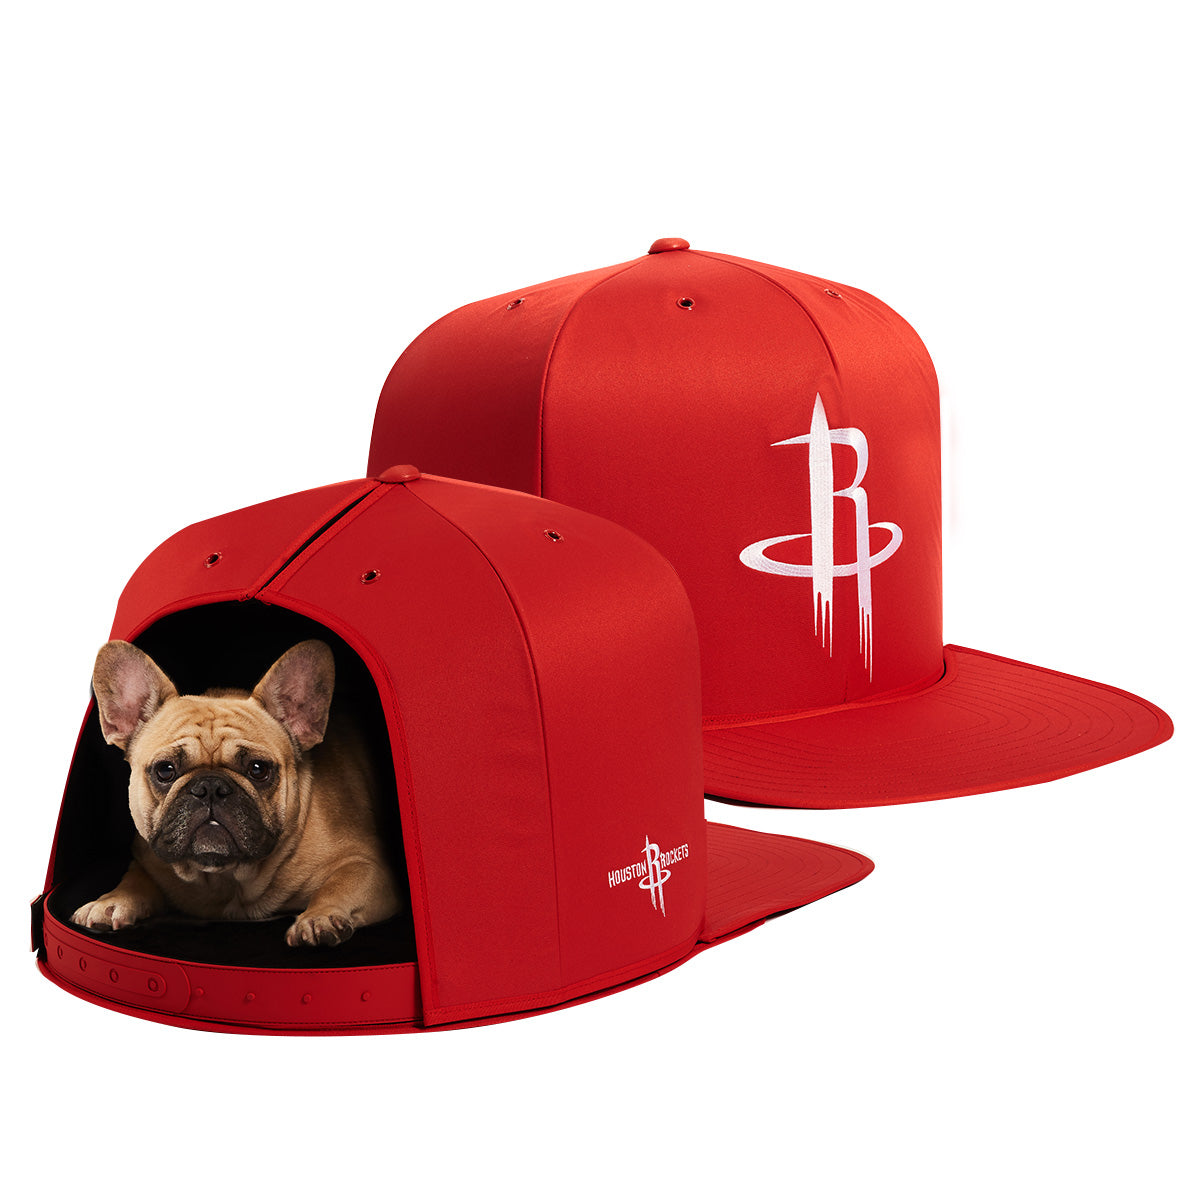 Nap Cap - NBA - Houston Rockets - Pet Bed